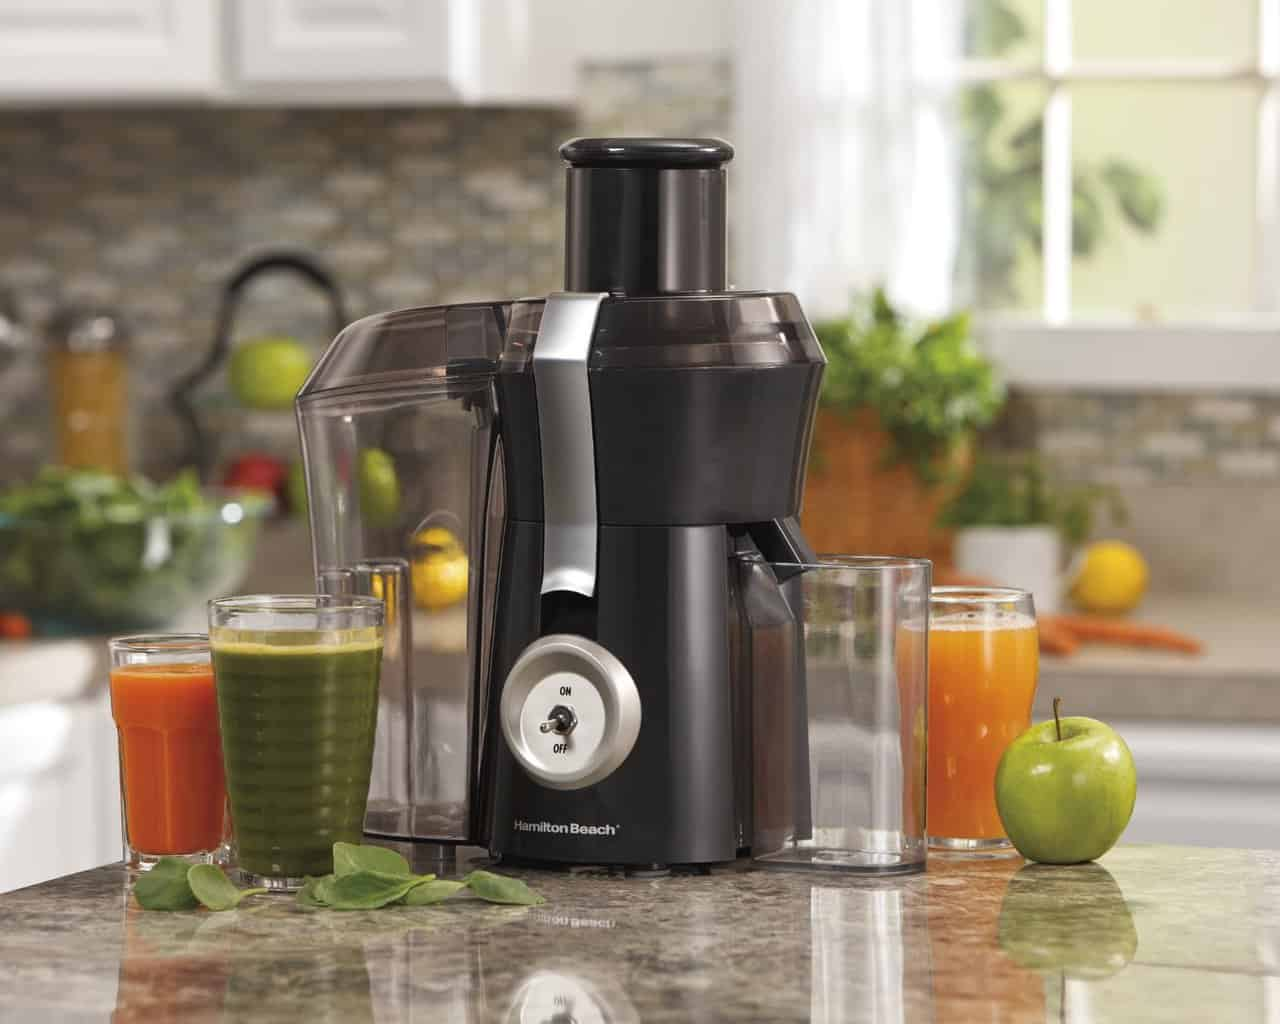 Hamilton Beach 67650A Big Mouth Pro Juice Extractor